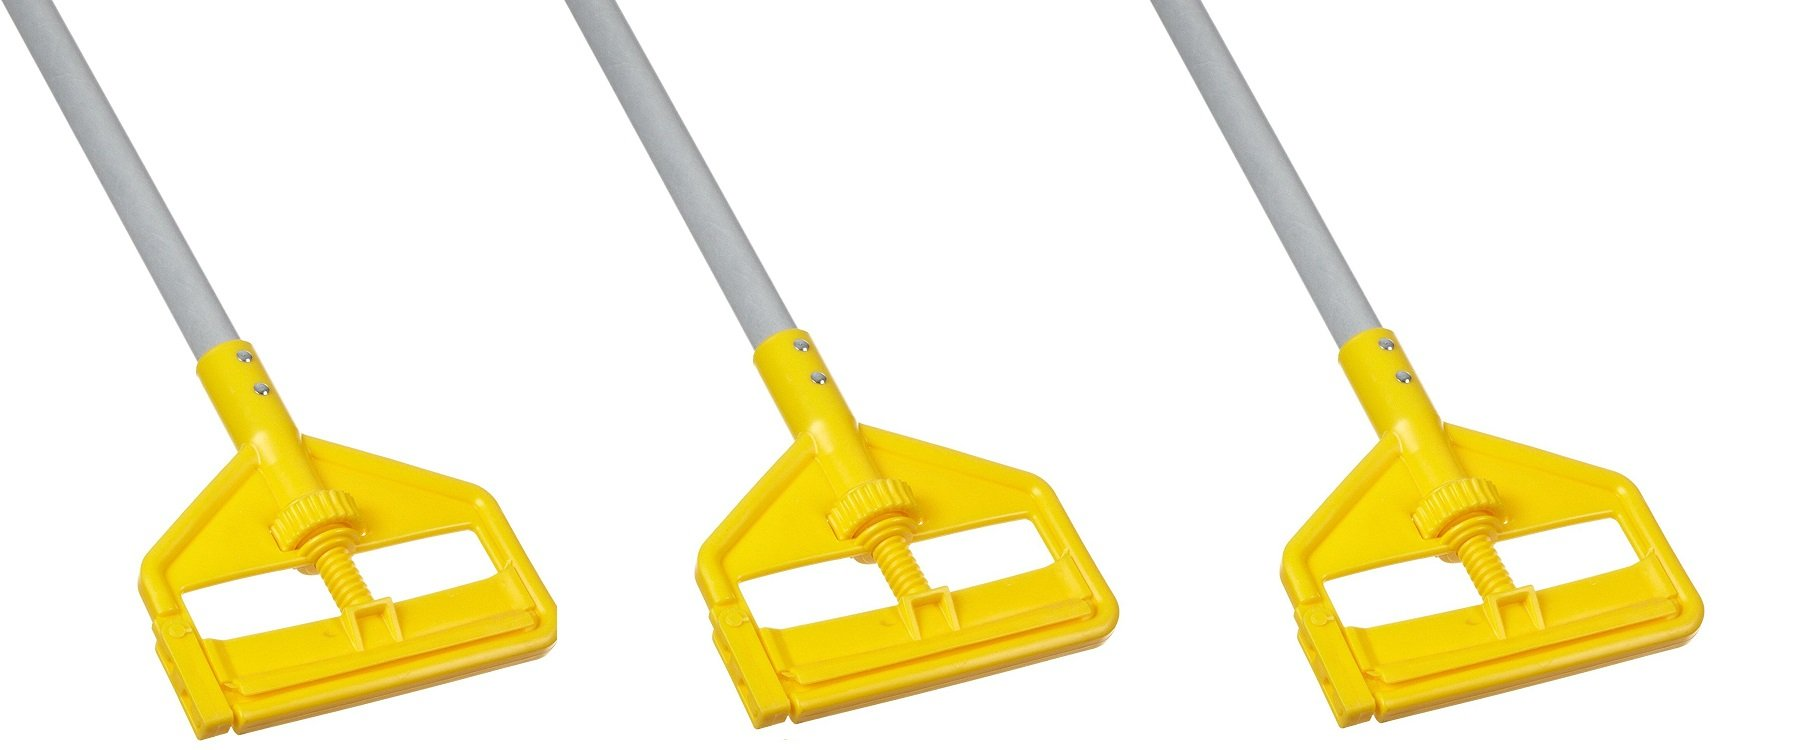 Rubbermaid Commercial Invader Side Gate Wet Mop Handle, 54-Inch, FGH145000000 (3 PACK)